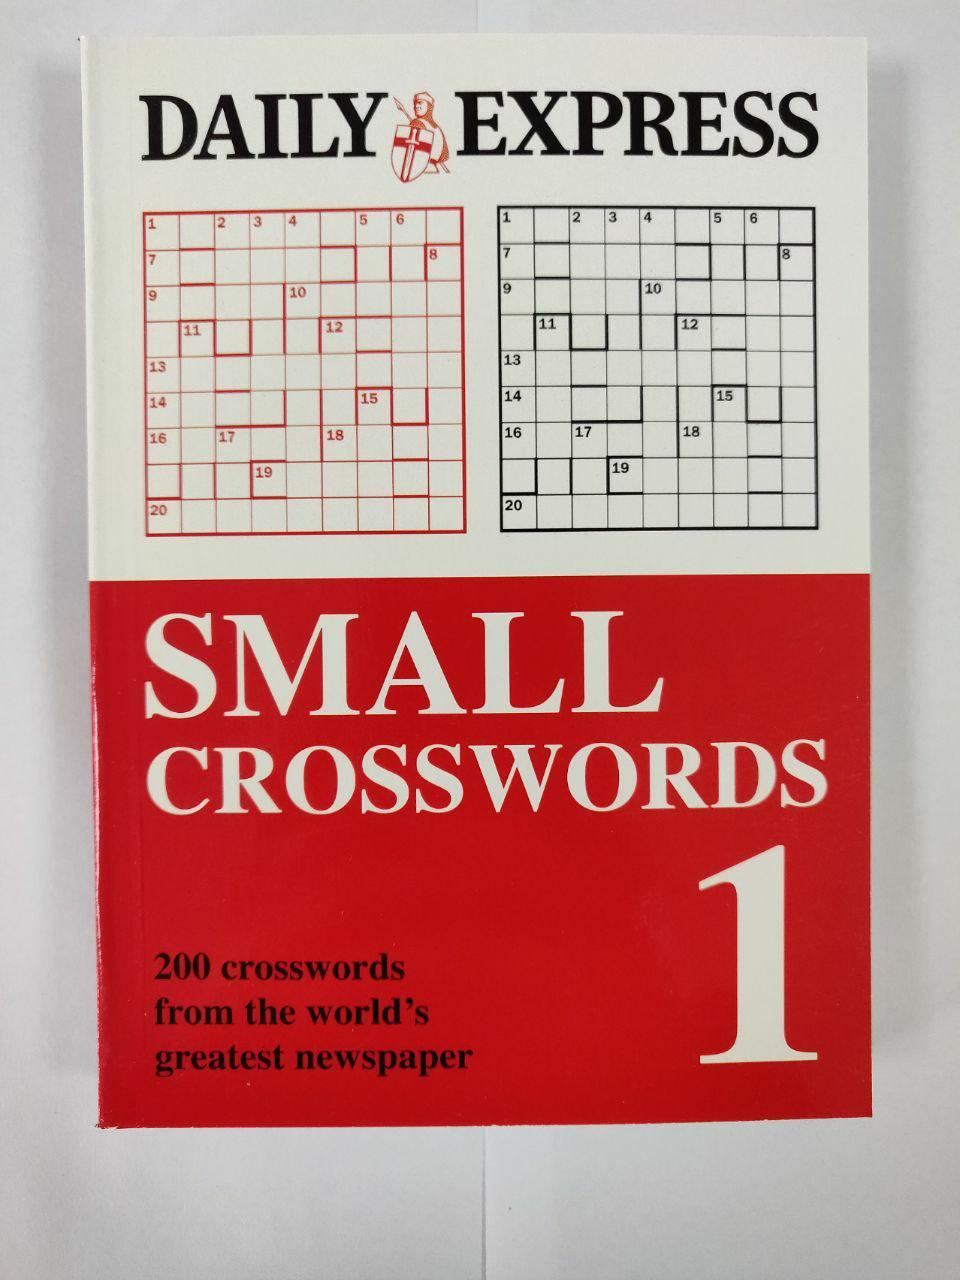 Daily Express Small Crosswords 1